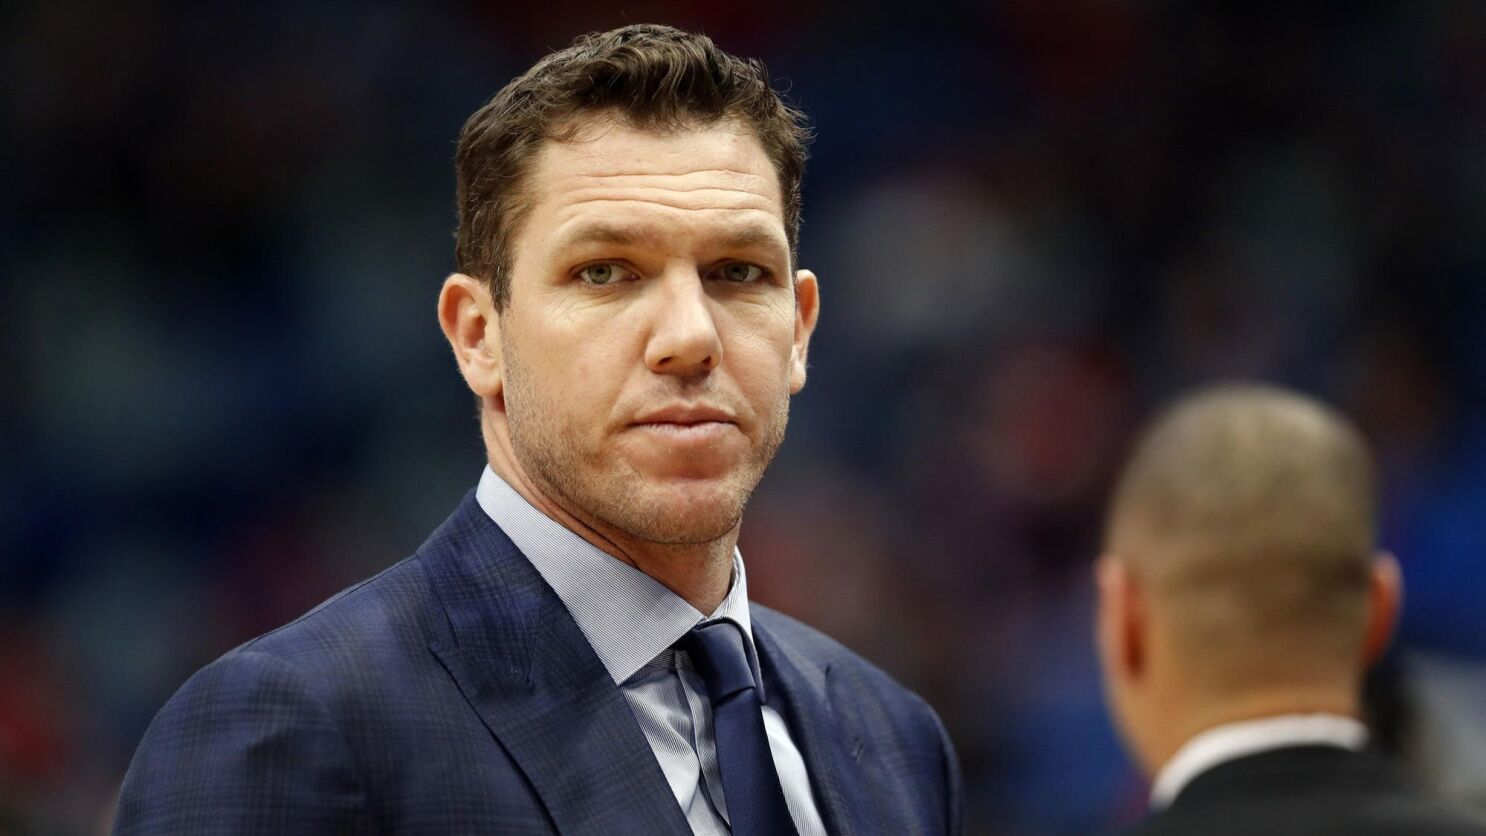 NBA finds insufficient evidence in Luke Walton sexual assault allegations